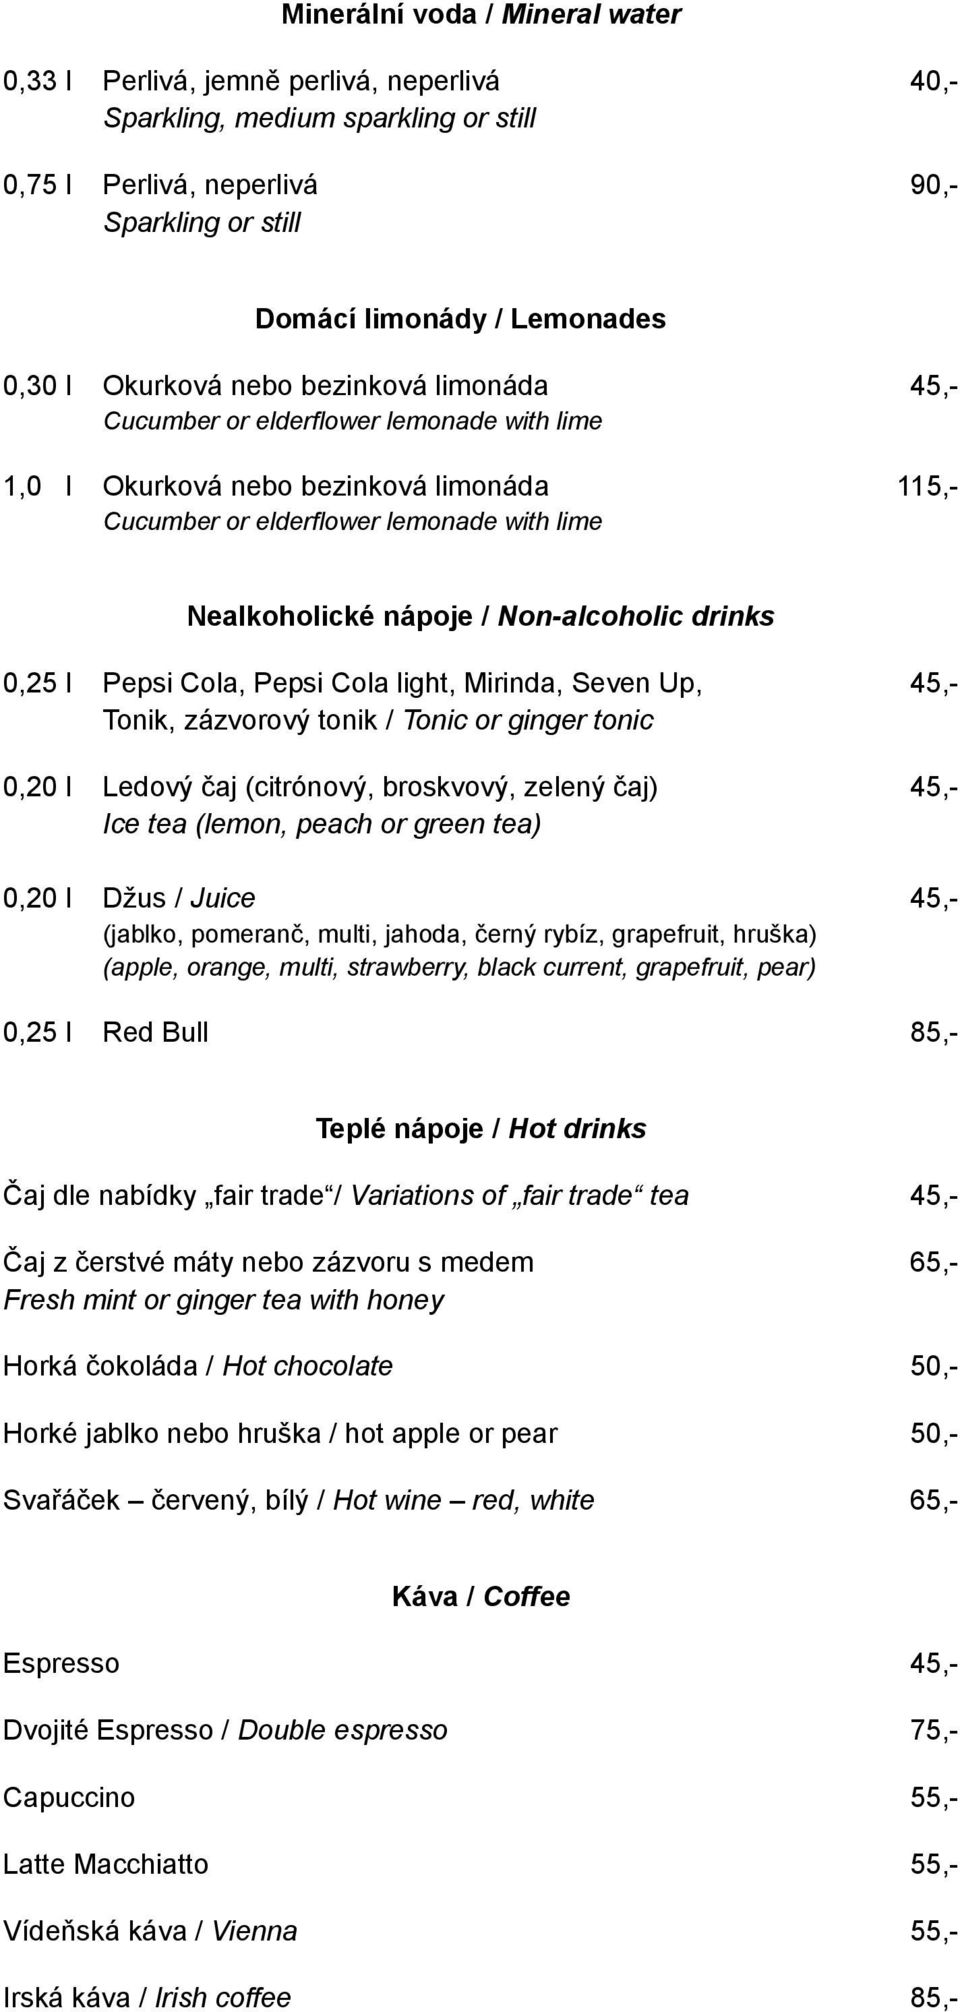 Non-alcoholic drinks 0,25 l Pepsi Cola, Pepsi Cola light, Mirinda, Seven Up, 45,- Tonik, zázvorový tonik / Tonic or ginger tonic 0,20 l Ledový čaj (citrónový, broskvový, zelený čaj) 45,- Ice tea